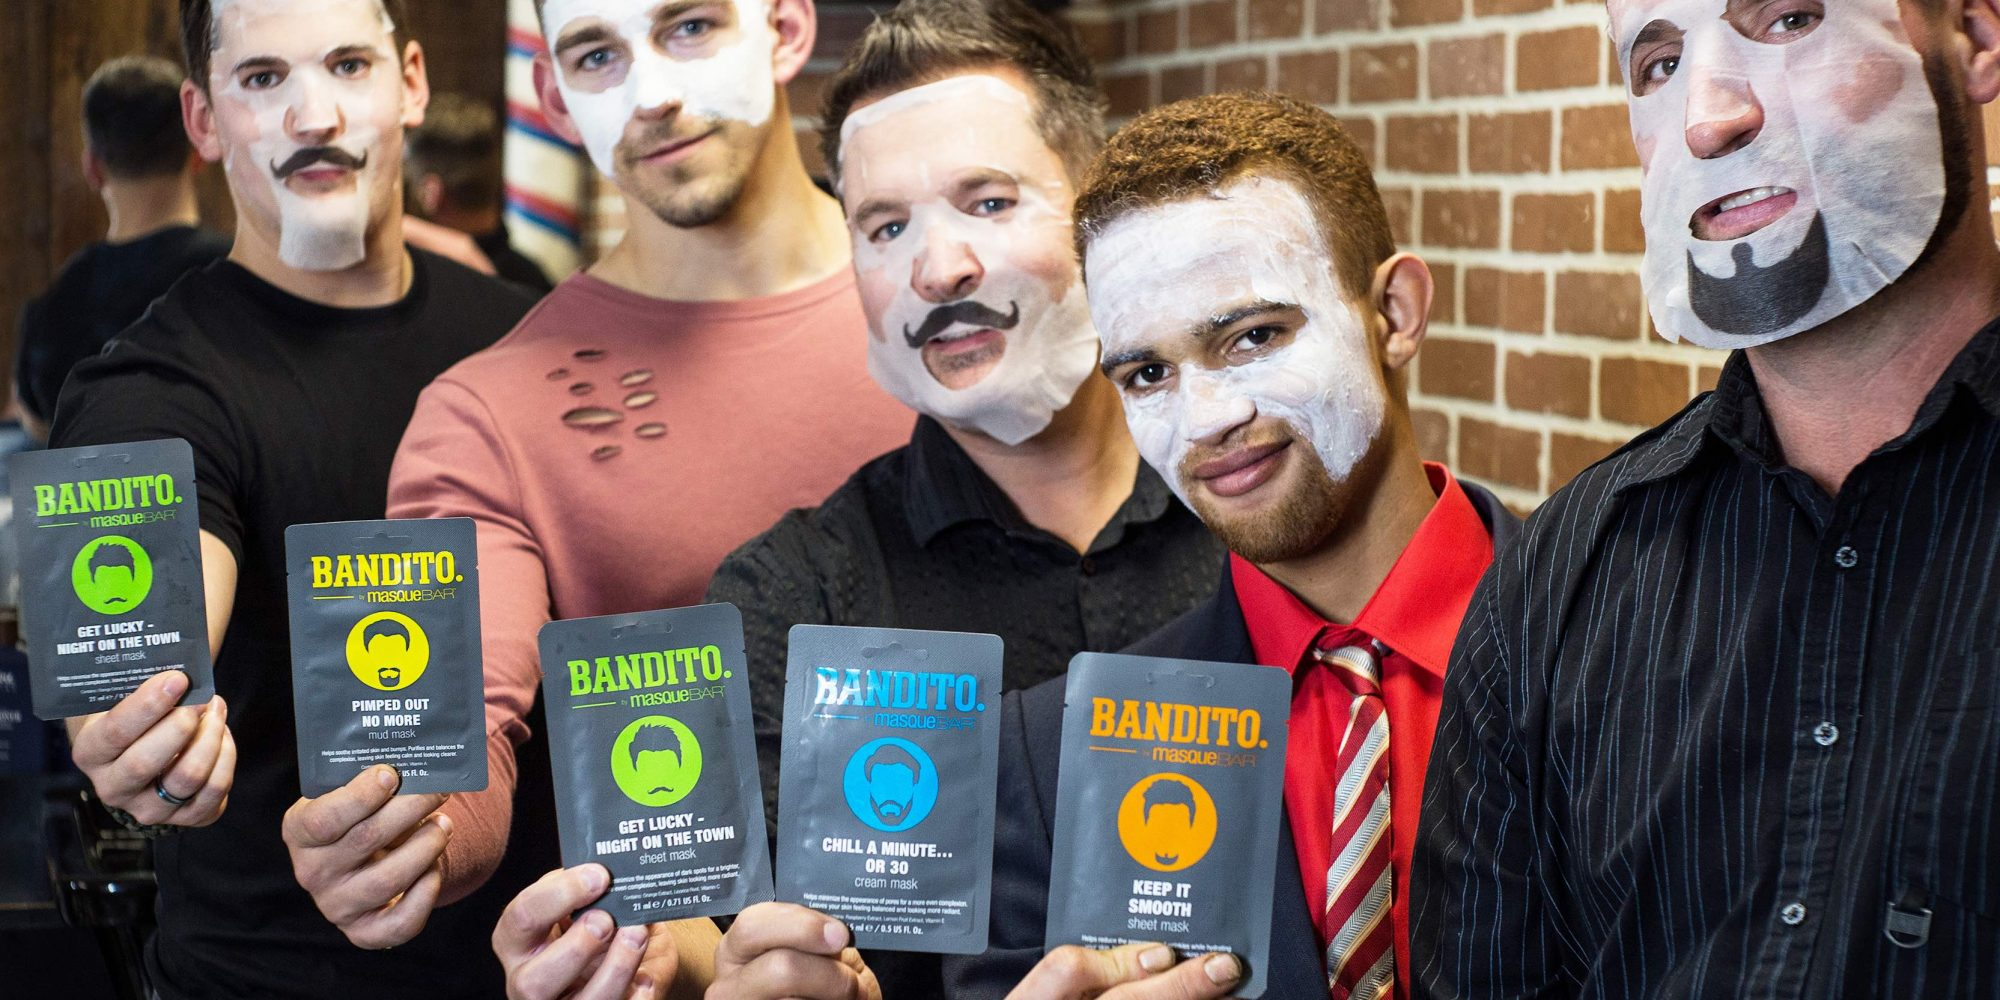 The Men's Market Looks Downright Glowy (Hint: Male Face Masking Is Involved)